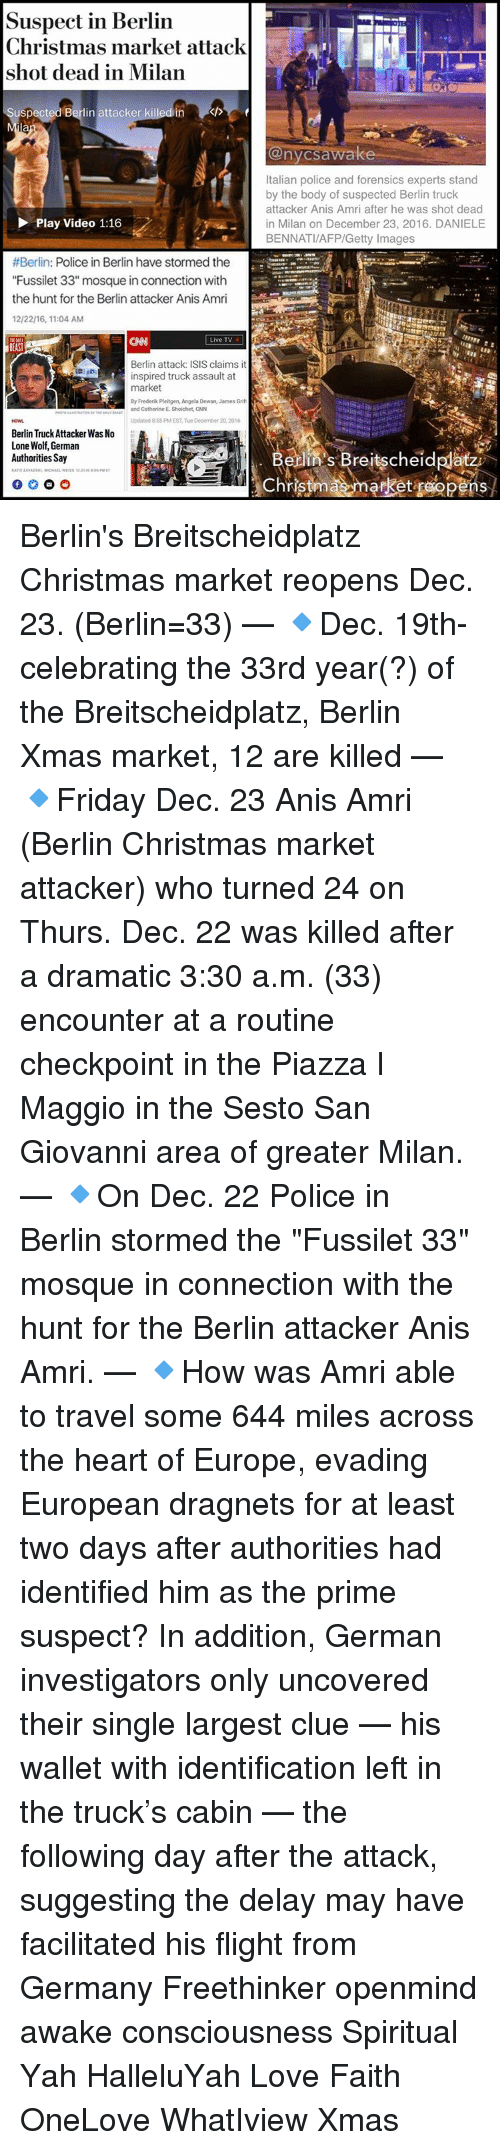 Suspect in Berlin Christmas Market Attack Shot Dead in Milan ...